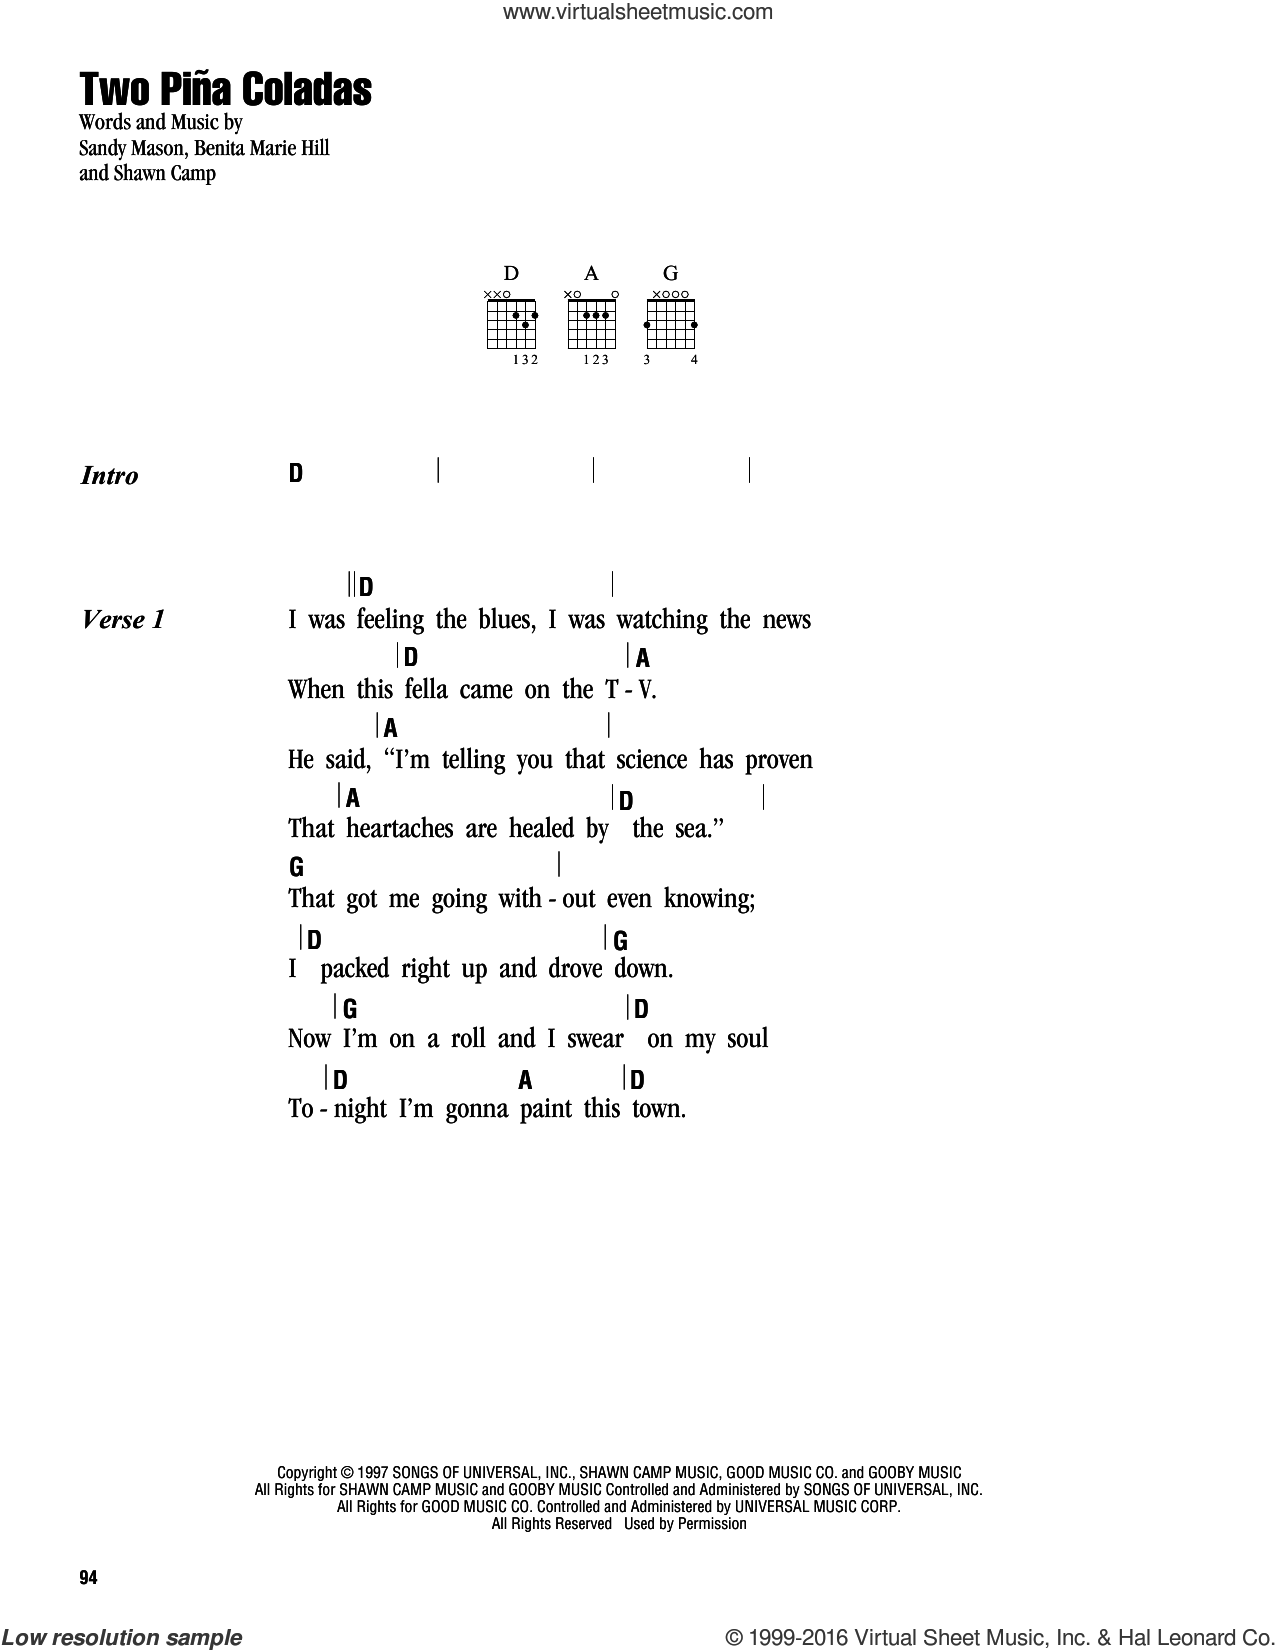 Two Pina Coladas sheet music for guitar (chords) by Shawn Camp and Garth Brooks. Score Image Preview.